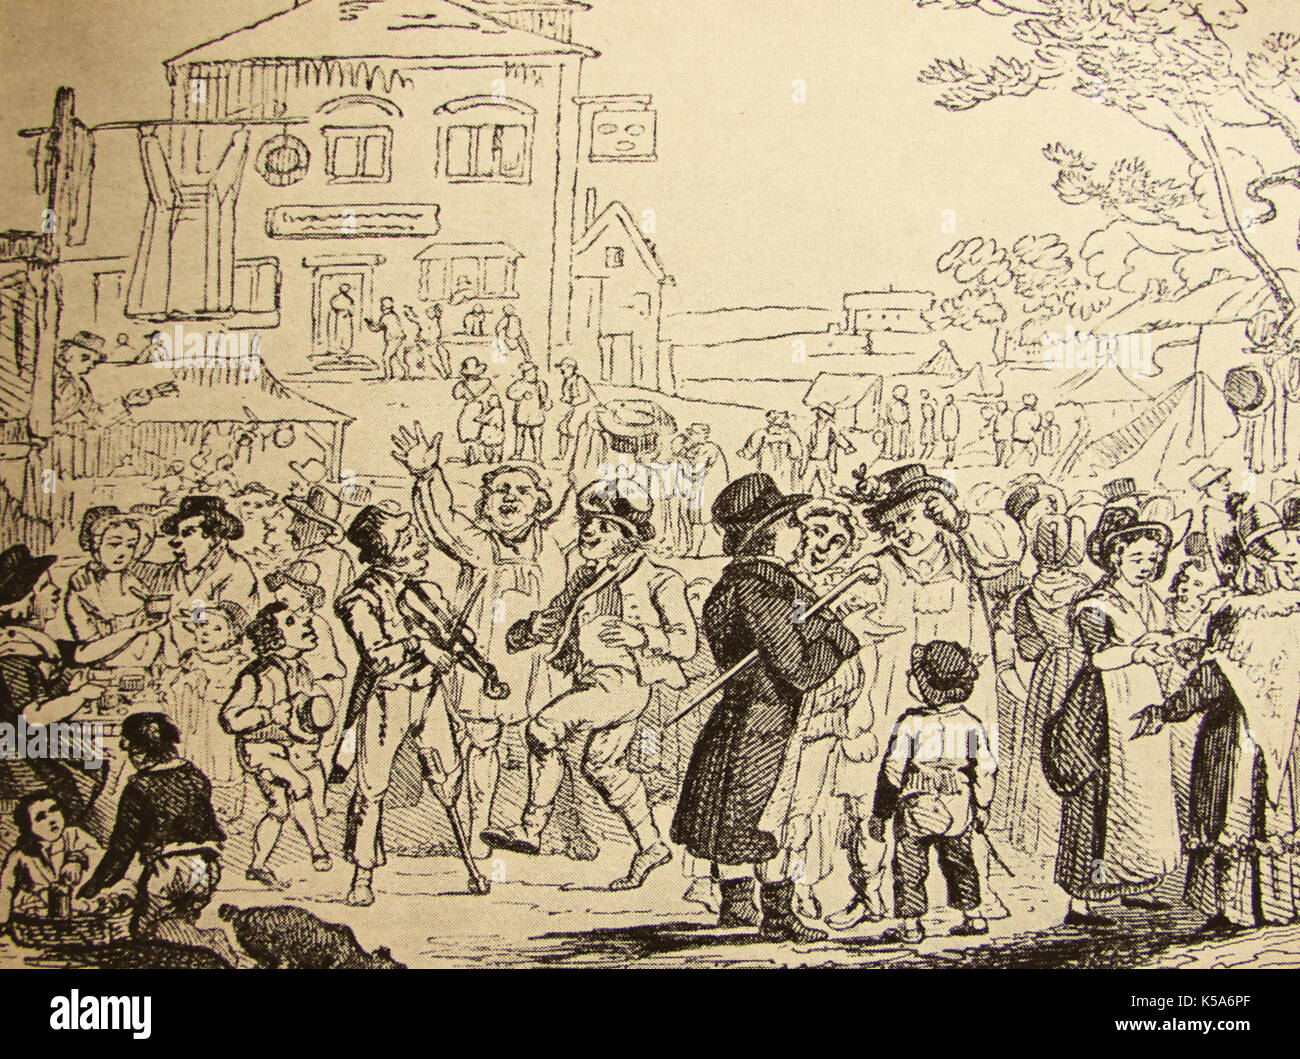 A 17th century Hustings aka Hiring Fair.  in England, where servants, ploughmen, agricultural and shop workers  were hired in a merry fairground atmosphere - Stock Image